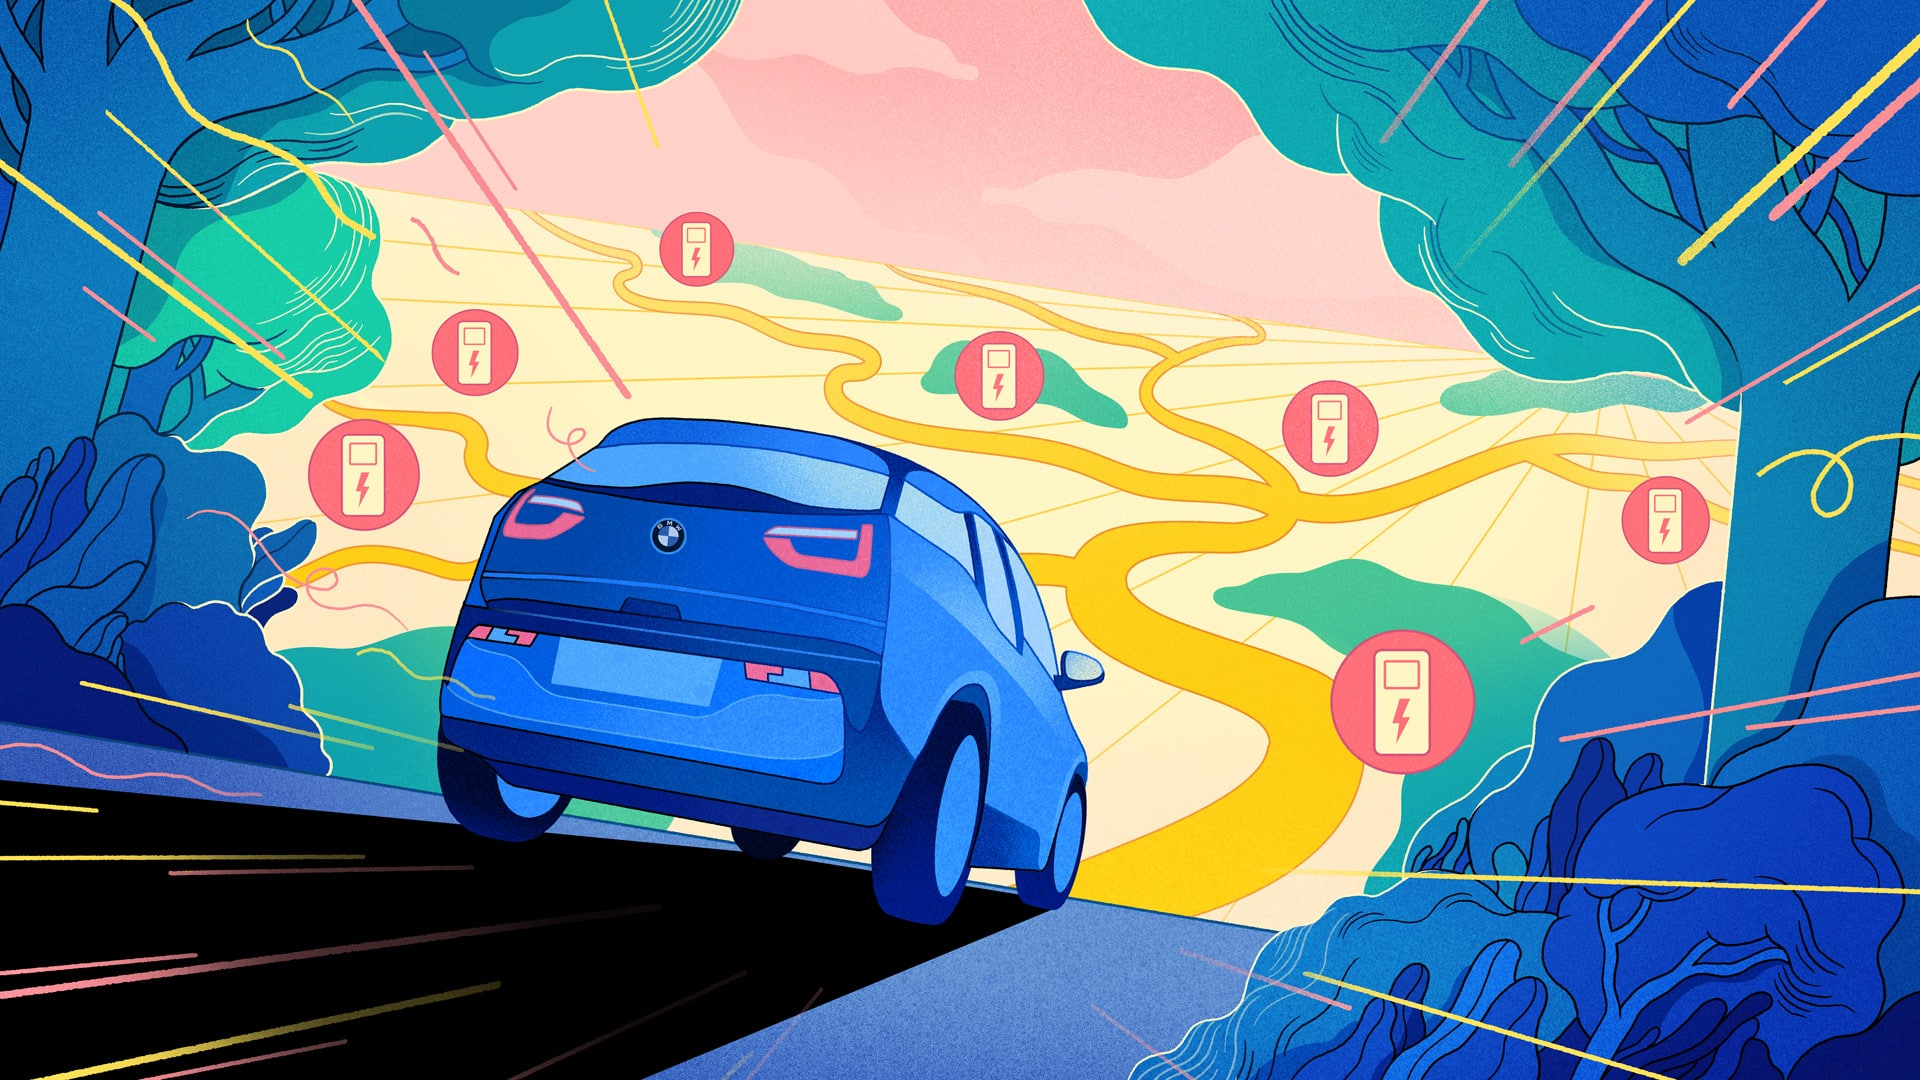 Powering Up How To Charge An Electric Car Bmw Com,Pictures For Bathroom Walls